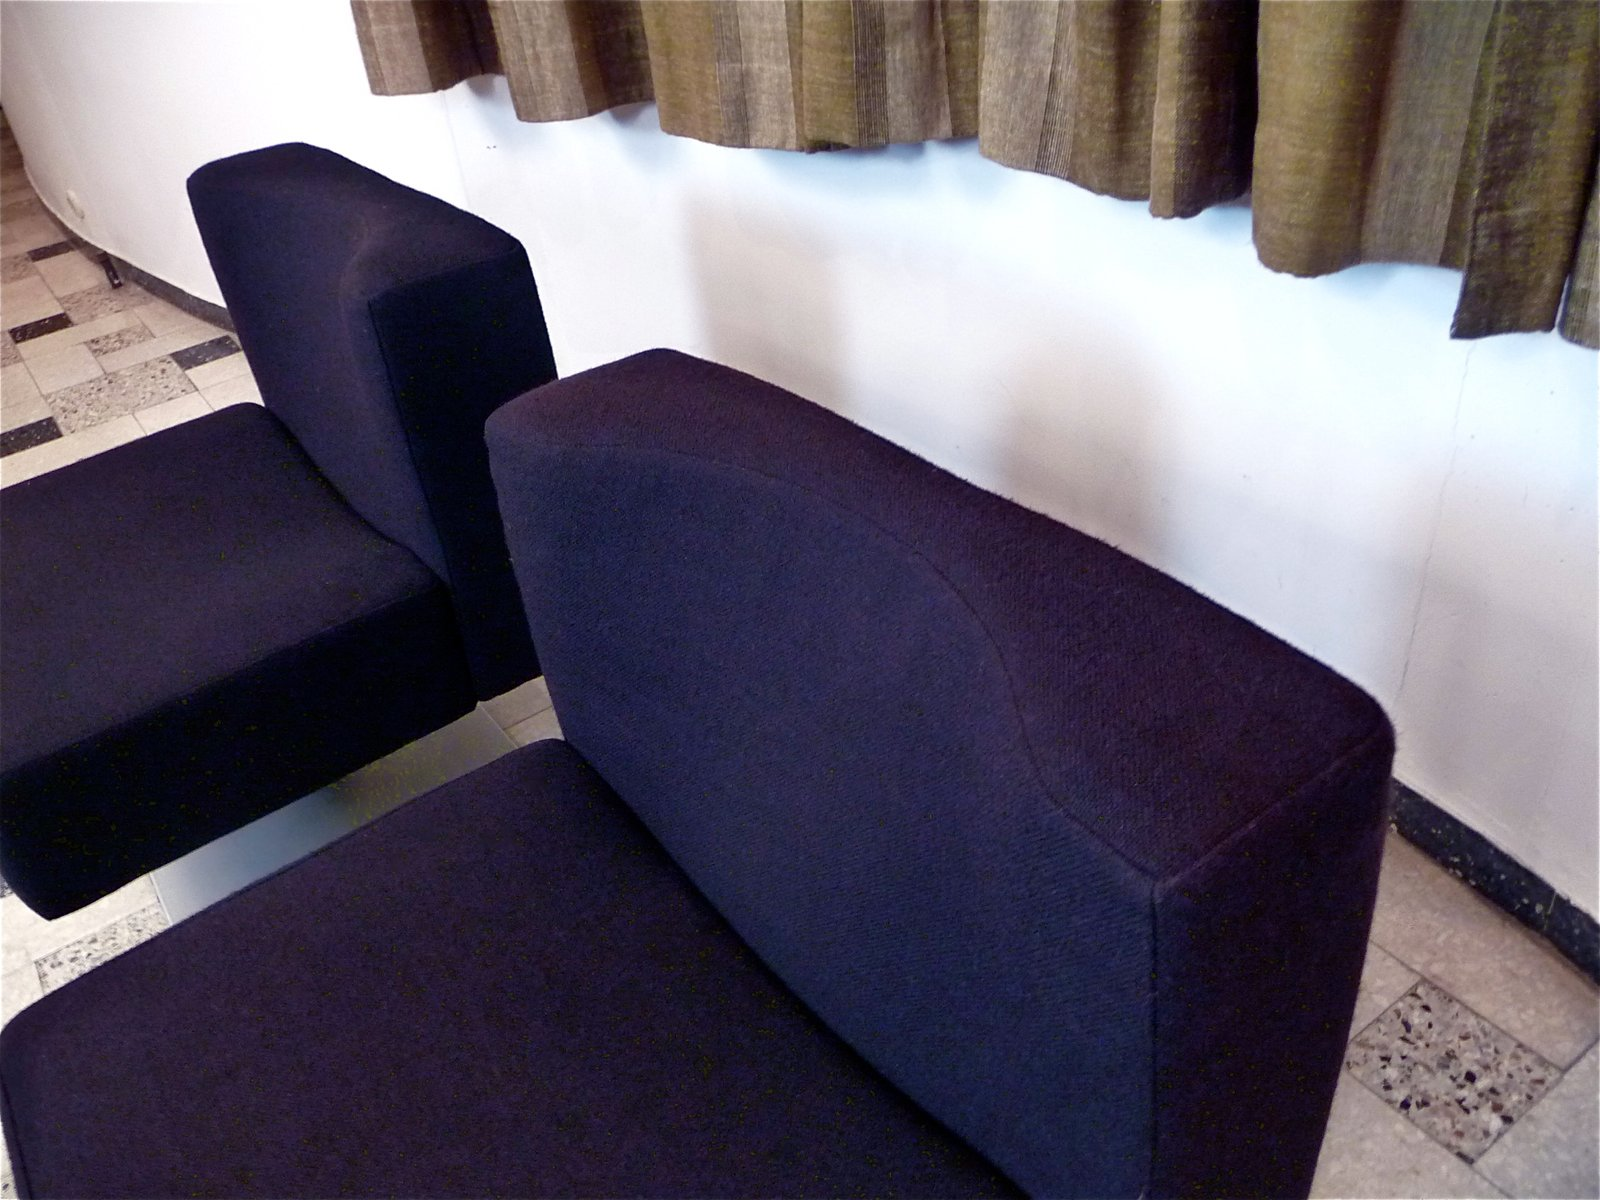 system 350 lounge chairs side table by herbert hirche. Black Bedroom Furniture Sets. Home Design Ideas